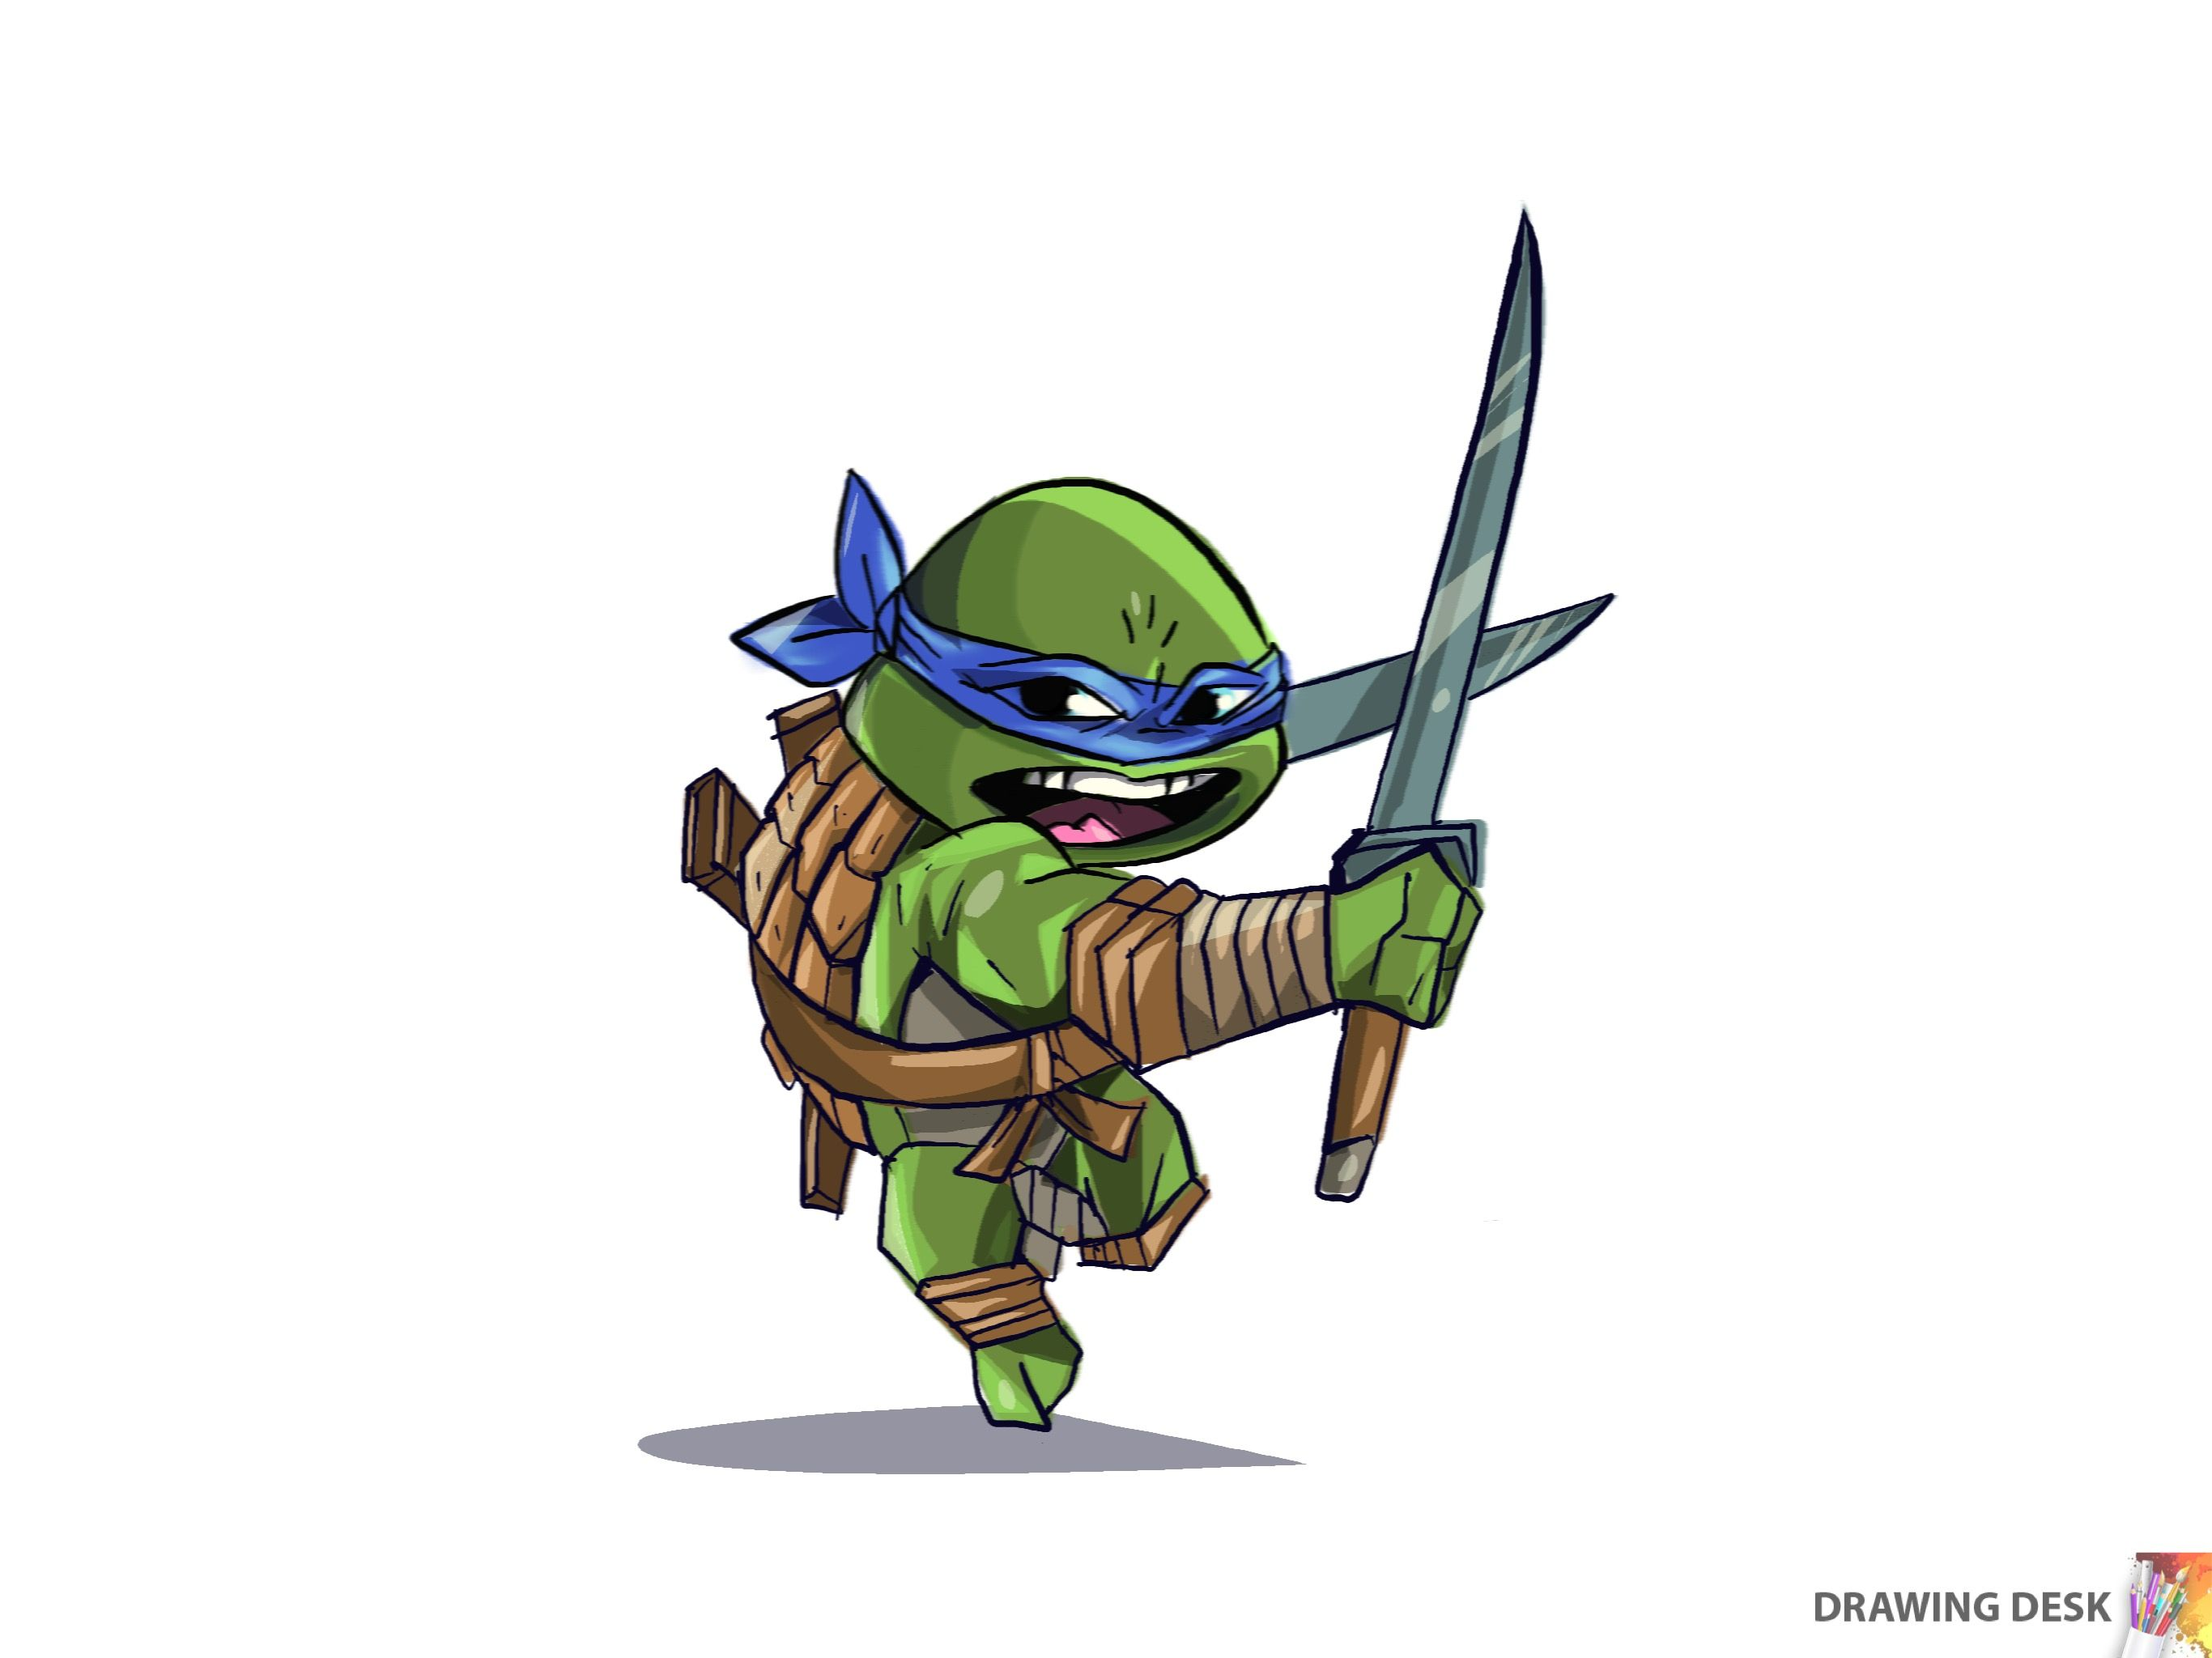 A Drawing Done By Drawing Desk App Ninja Turtle Fan Art Drawing Art Drawingdesk Drawingapp Ninjaturtles Leonard Character Drawing Drawing Desk Drawings